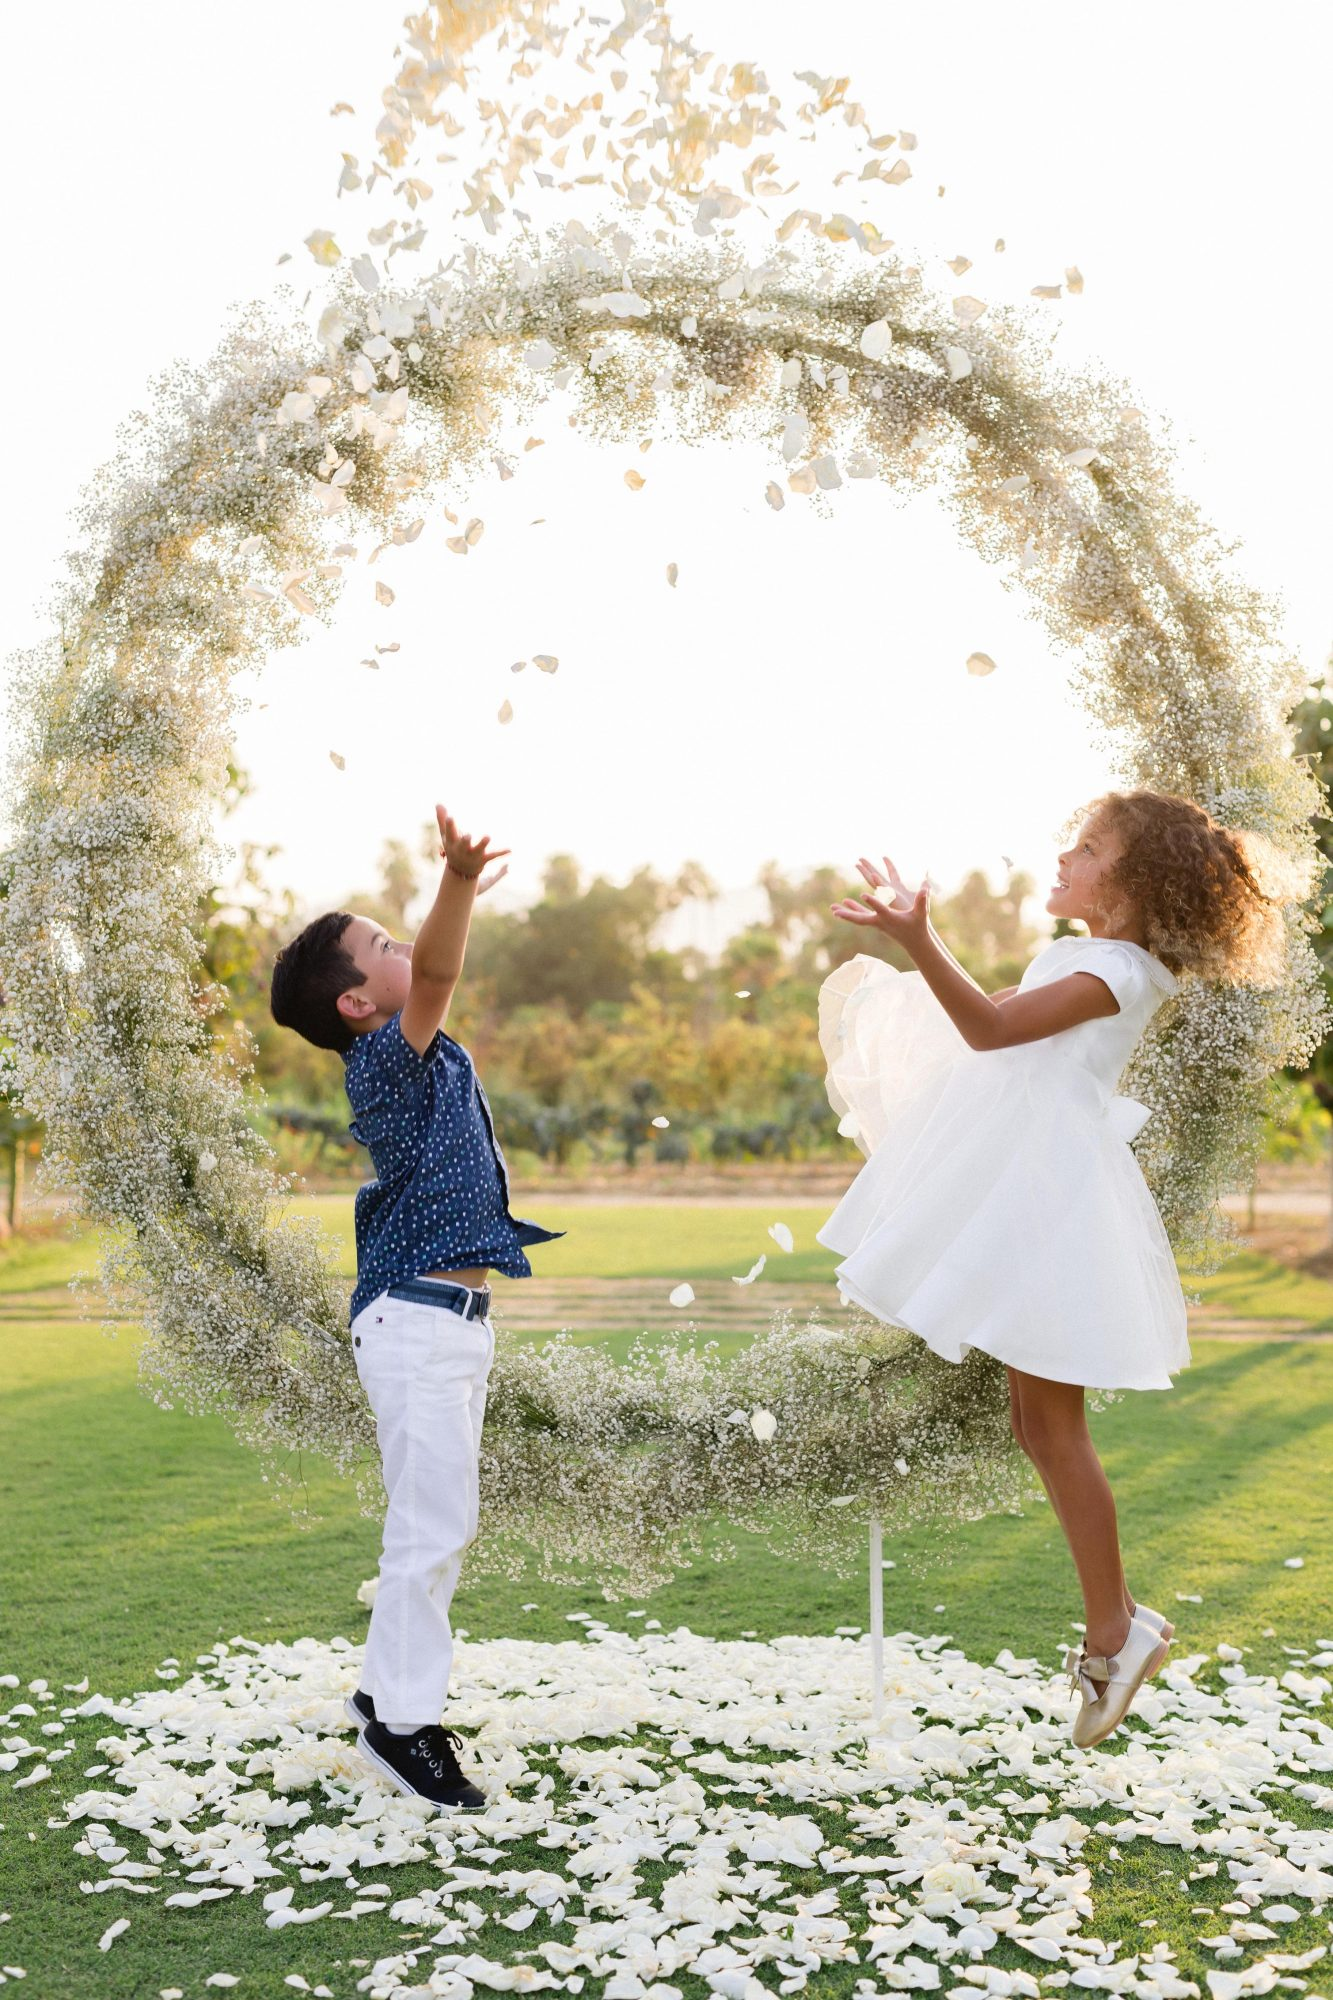 brittany craig wedding kids playing in petals